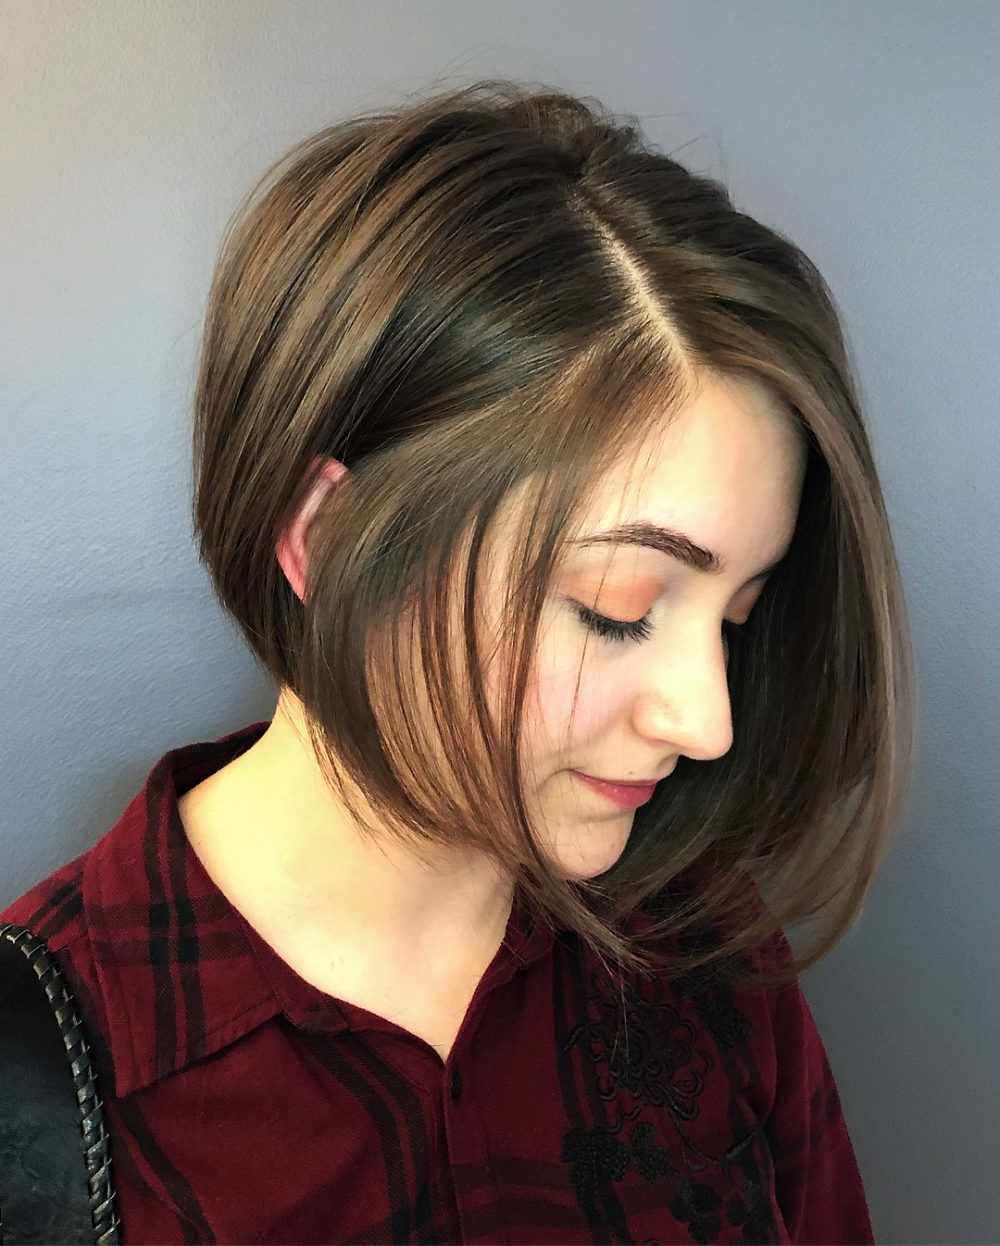 33 Flattering Short Hairstyles For Round Faces In 2018 For Simple Short Haircuts For Round Faces (View 14 of 25)